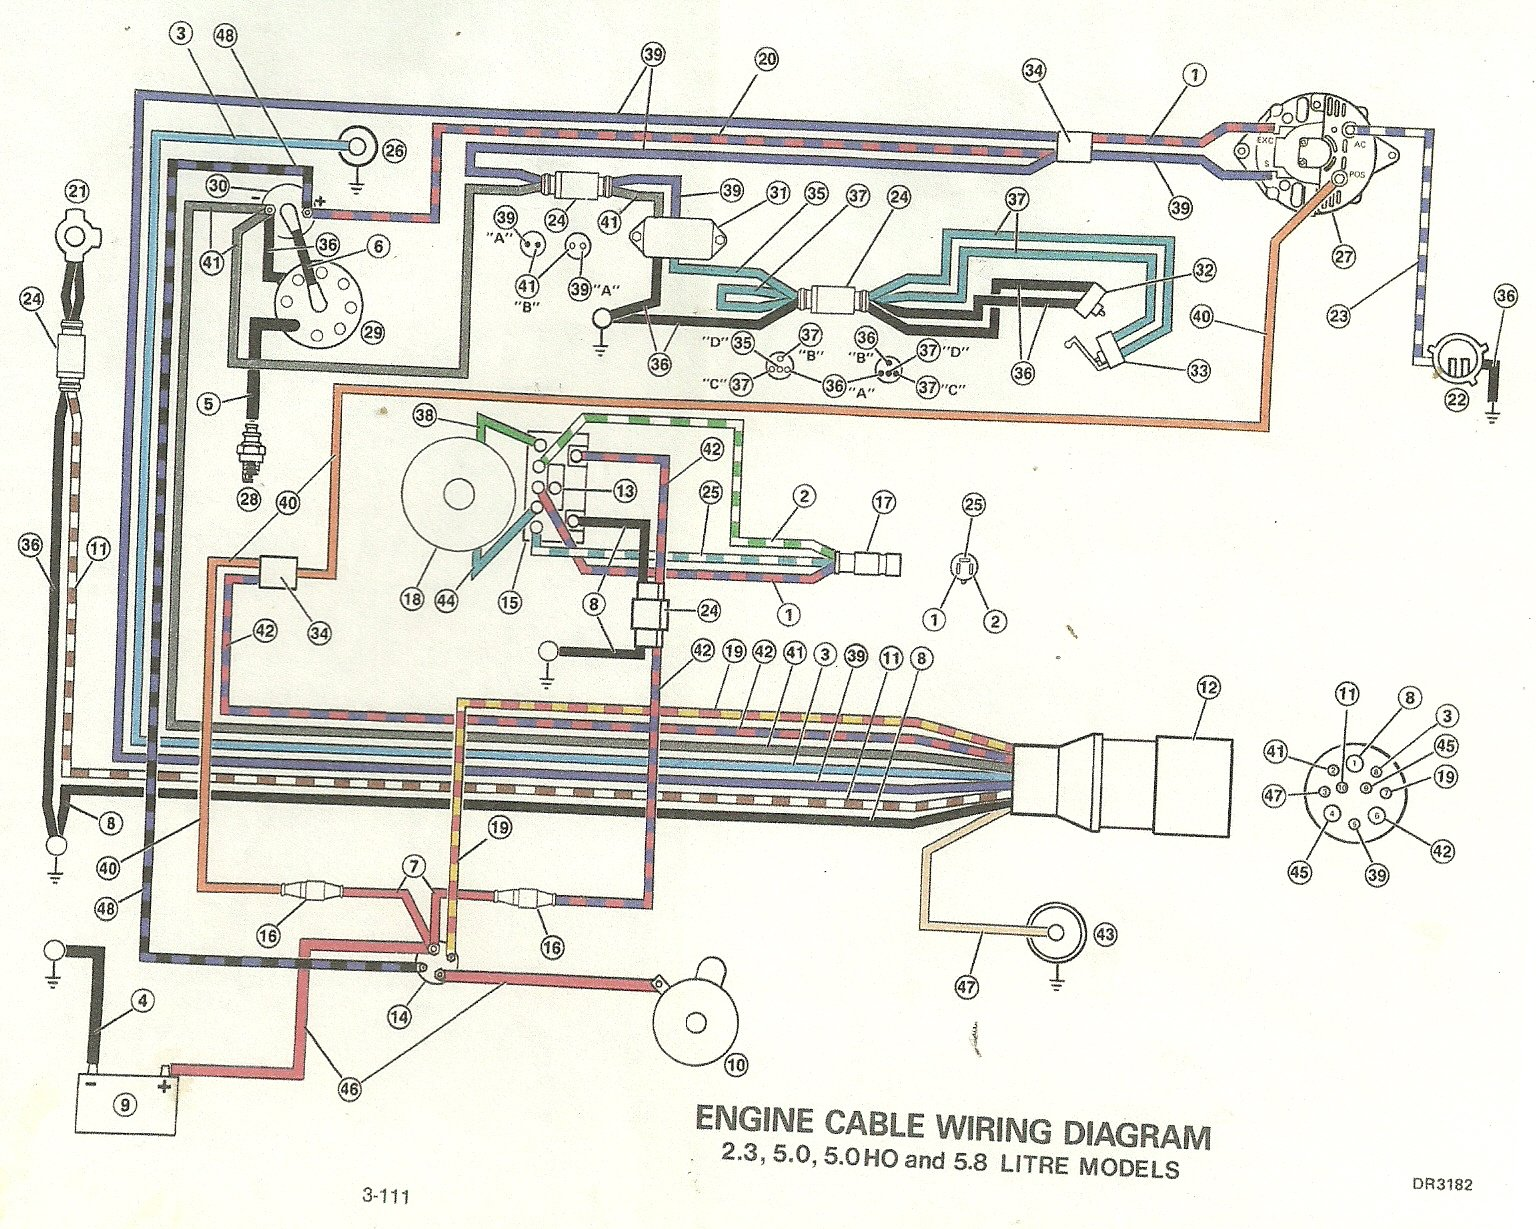 4 5 liter toyota engine diagram wiring diagrams best 4 5 liter toyota engine diagram wiring library 8 1 liter engine diagram 4 5 liter toyota engine diagram